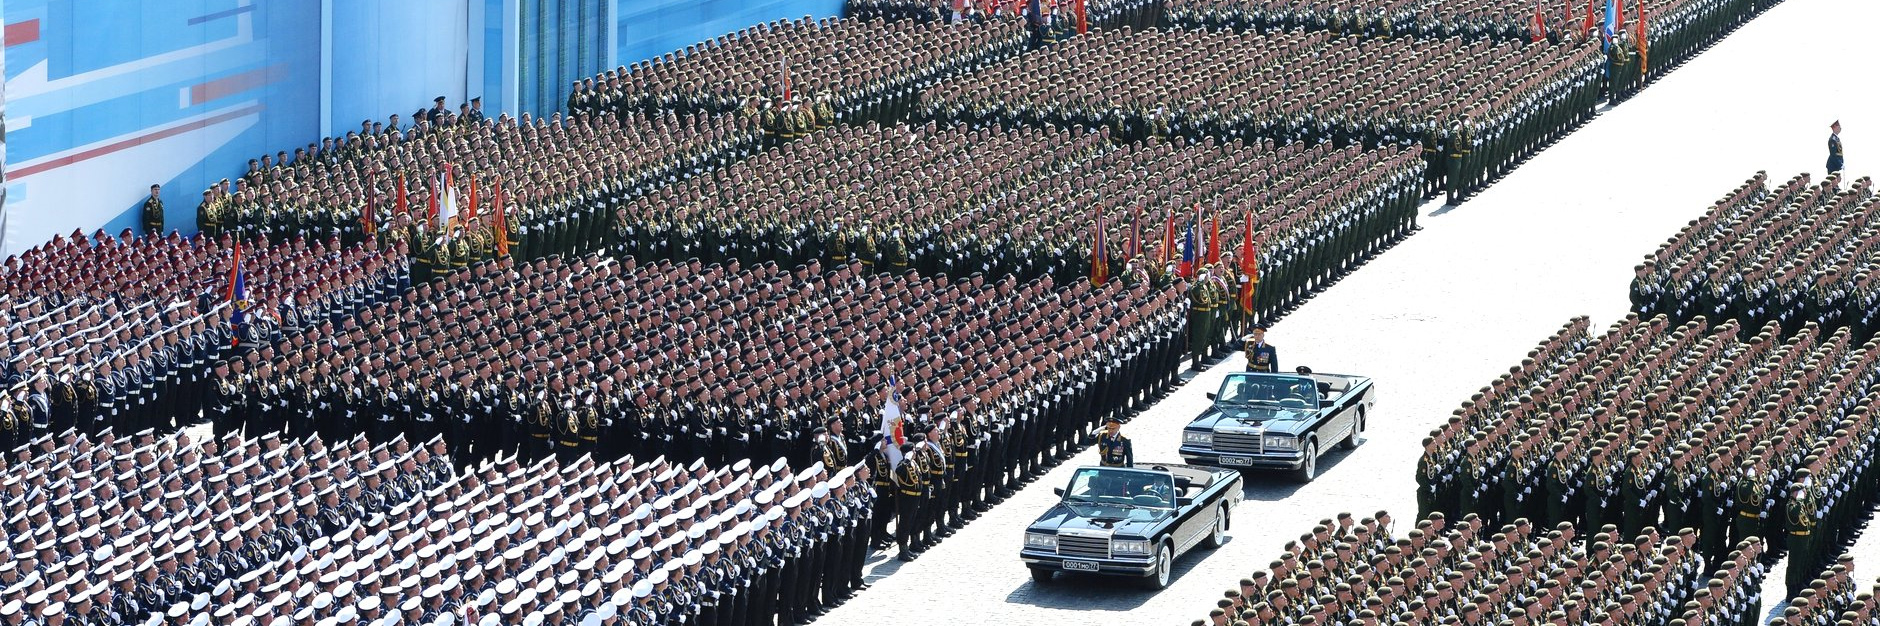 Russia Victory Day parade. Image: Wikimedia